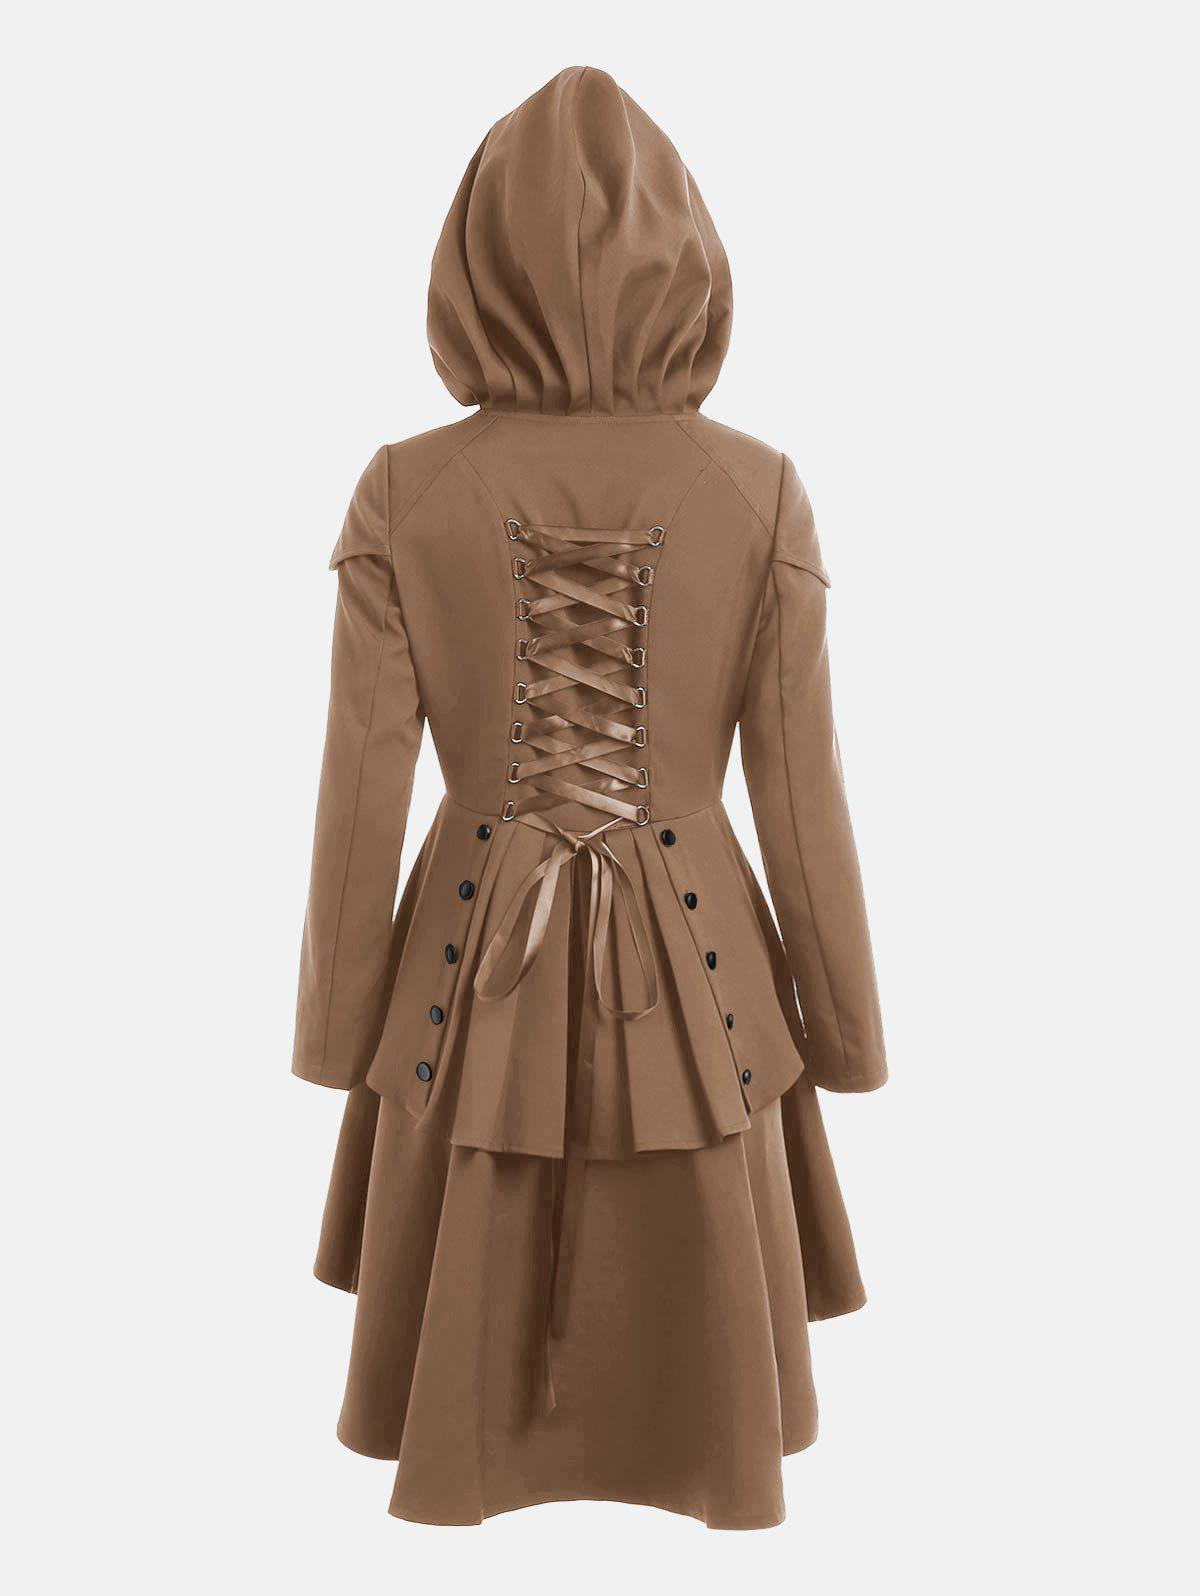 Lace Up Layered High Low Hooded CoatWOMEN<br><br>Size: 2XL; Color: KHAKI; Clothes Type: Others; Material: Polyester; Type: High Waist; Shirt Length: Long; Sleeve Length: Full; Collar: Hooded; Closure Type: Single Breasted; Pattern Type: Solid; Embellishment: Criss-Cross; Style: Gothic; Season: Fall,Spring; With Belt: No; Weight: 0.6600kg; Package Contents: 1 x Coat;